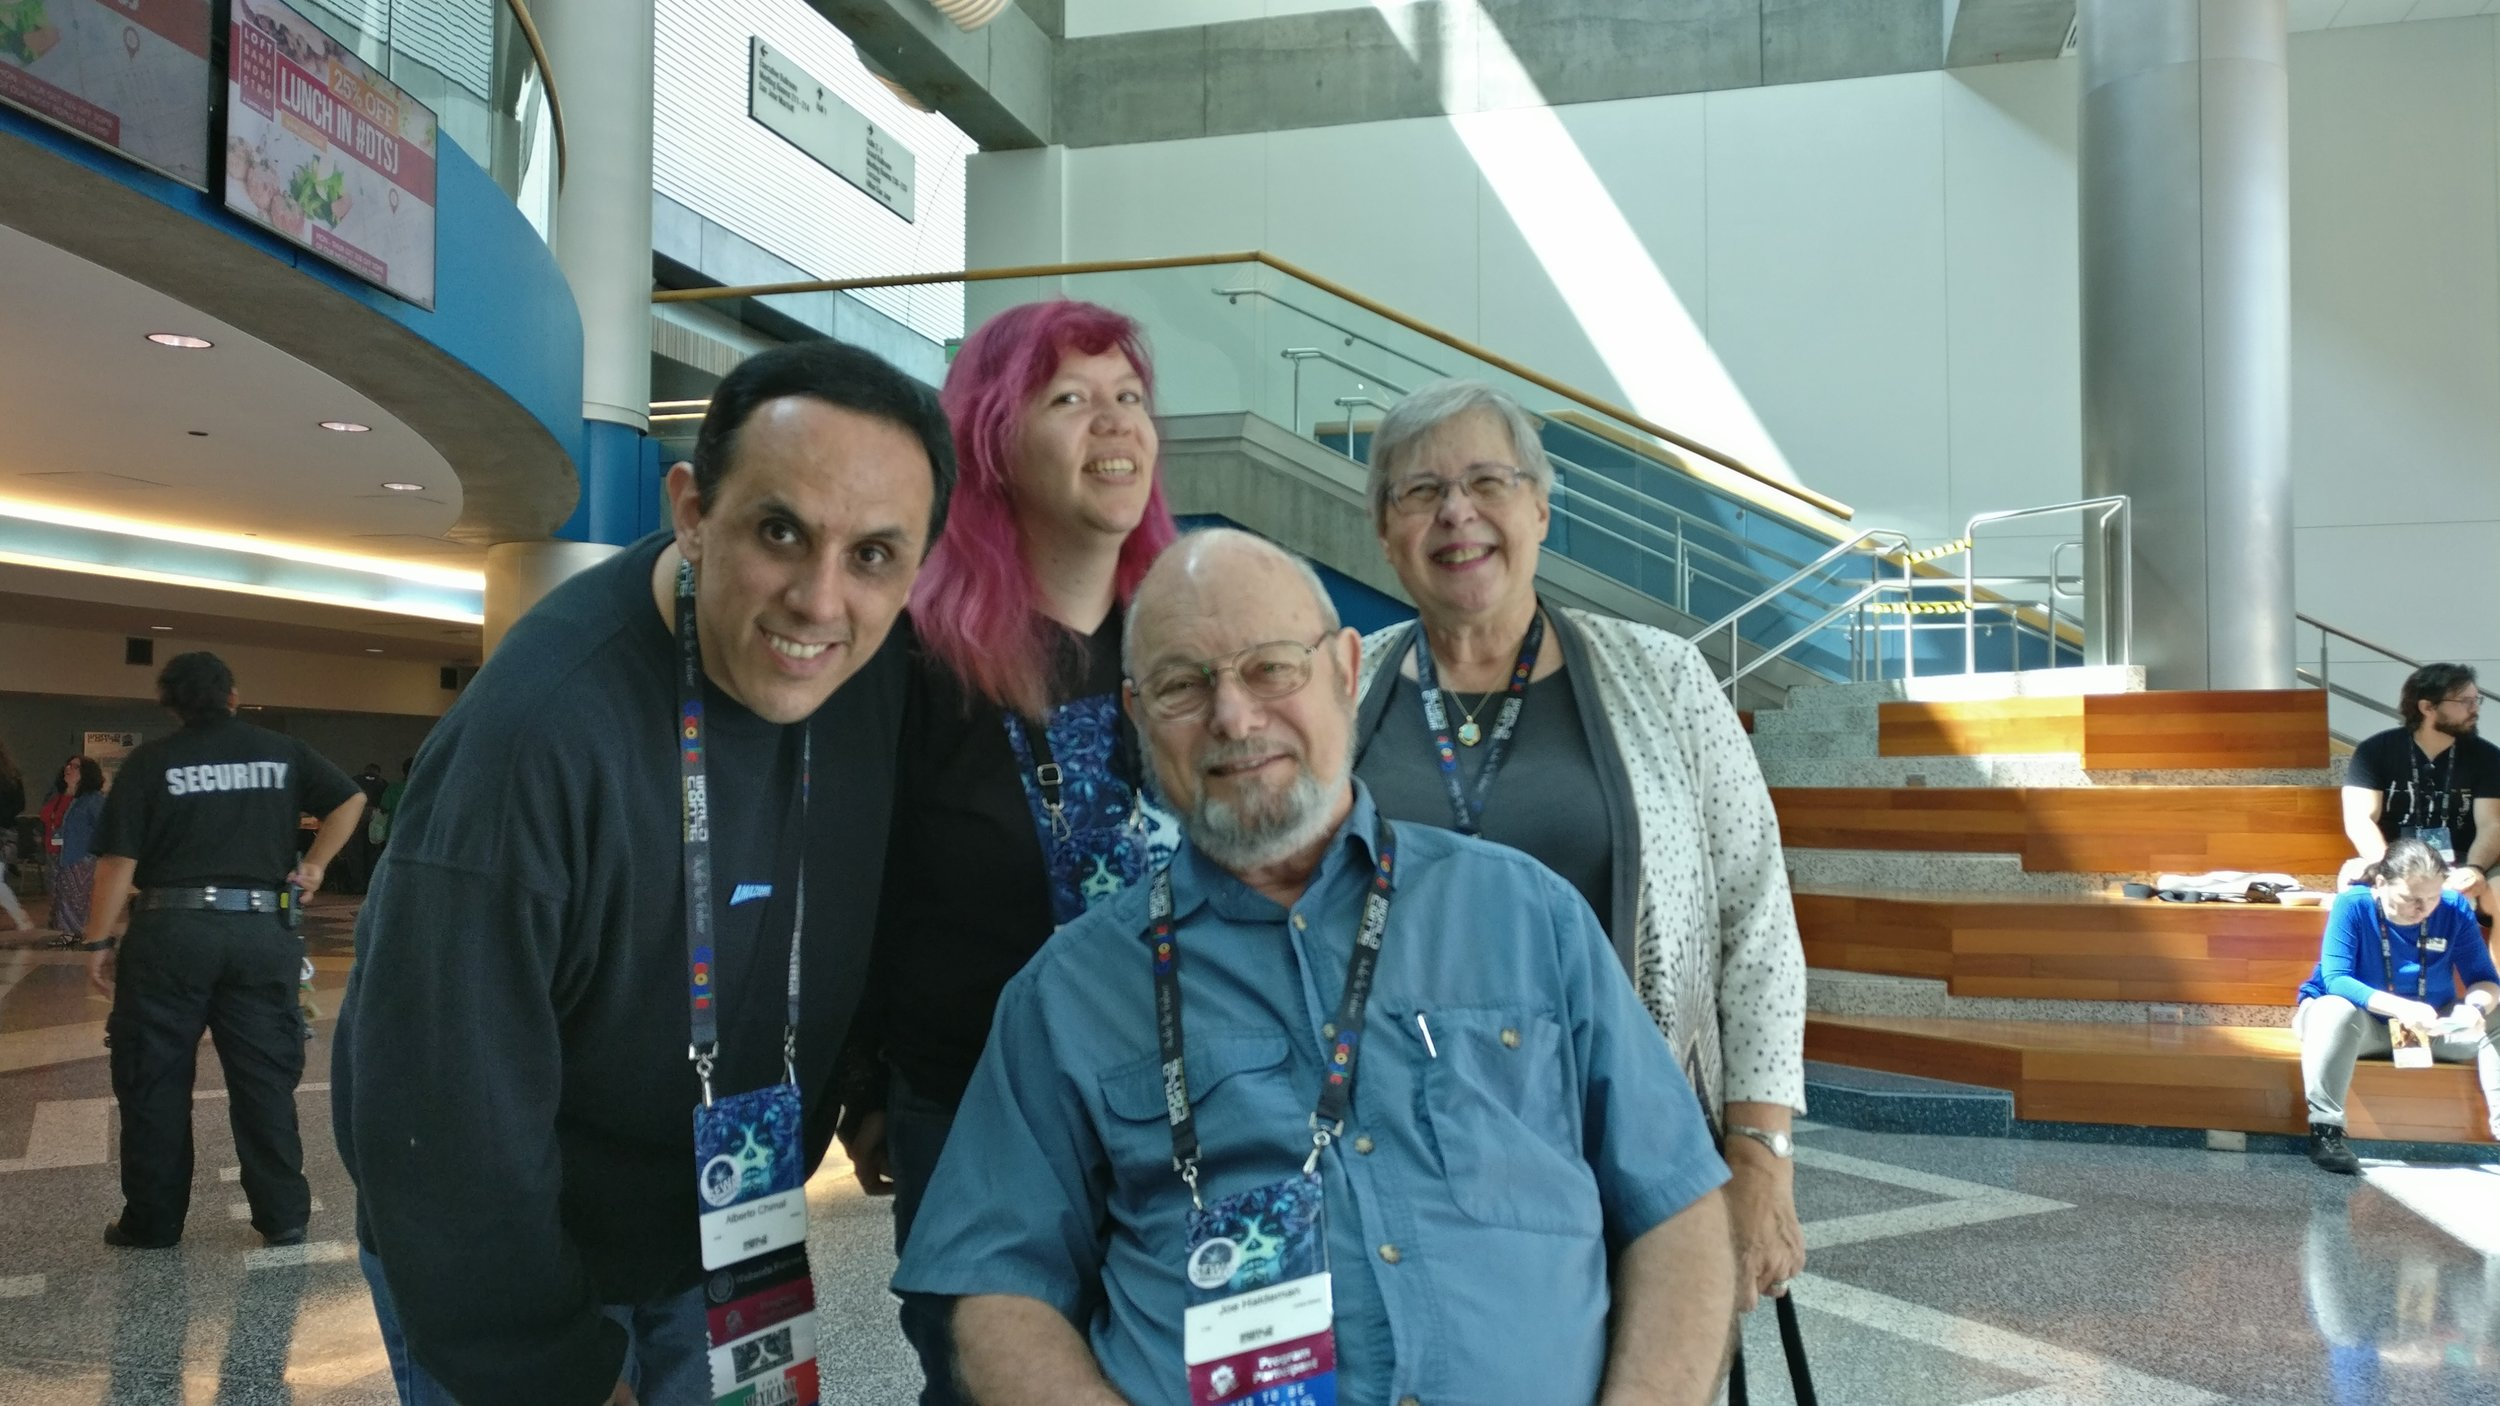 Alberto Chimal, Raque Castro, Joe Haldeman, and Gay Haldeman